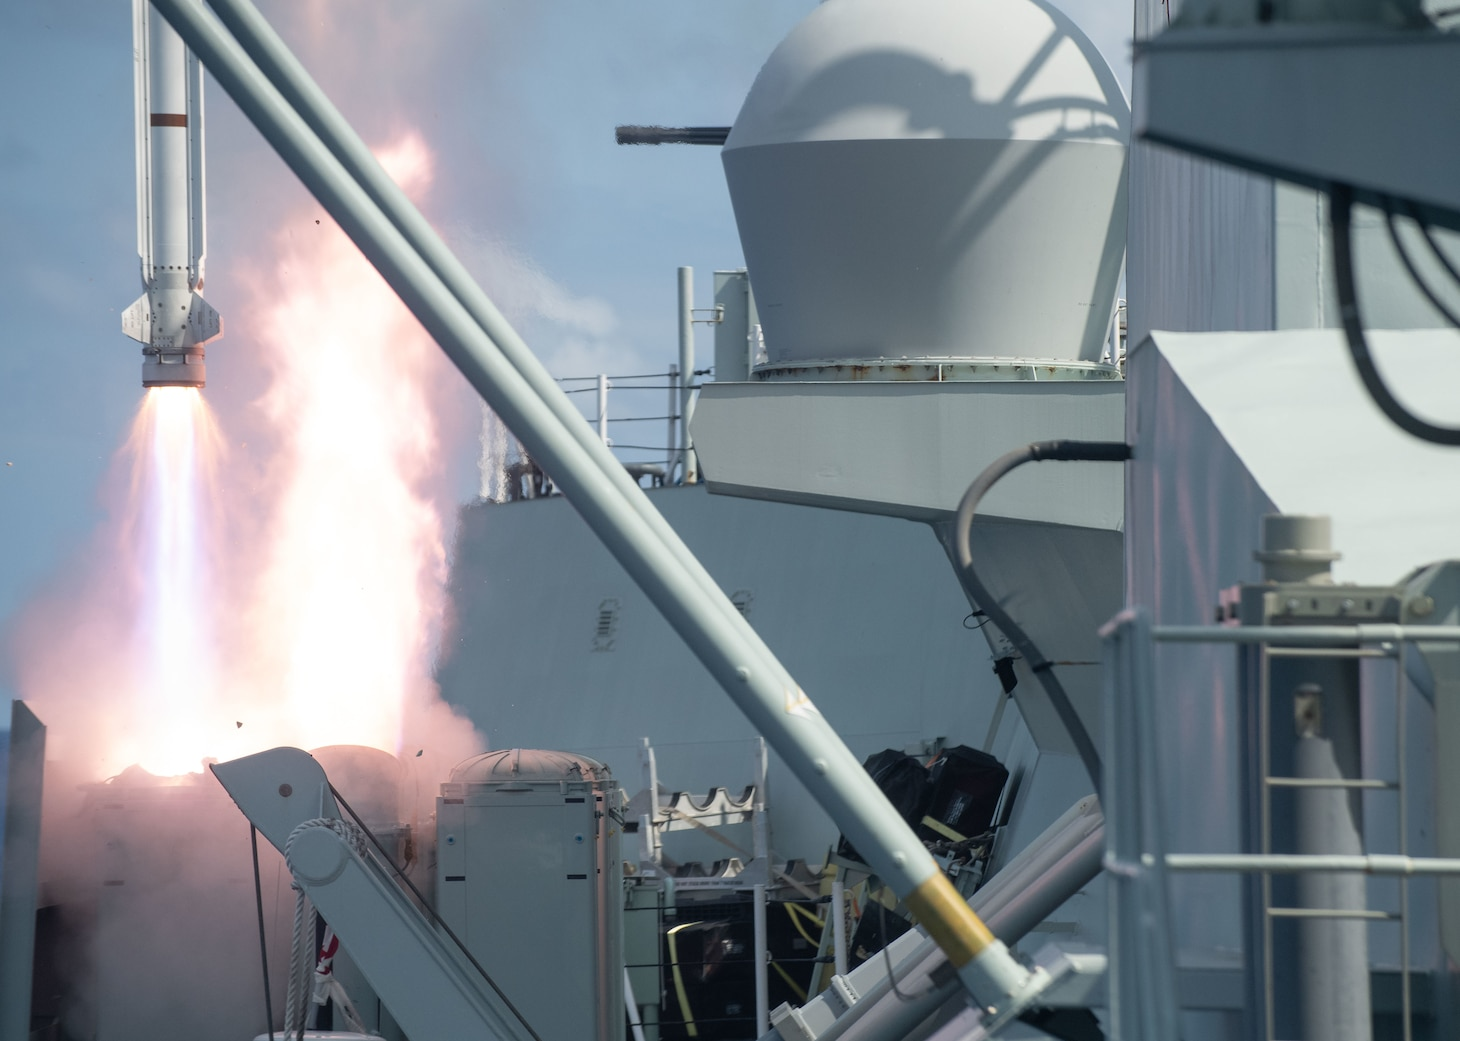 Her Majesty's Canadian Ship (HMCS) Winnipeg fires a missile at a practice target off the coast of the Hawaiian Islands during Exercise Rim of the Pacific (RIMPAC).